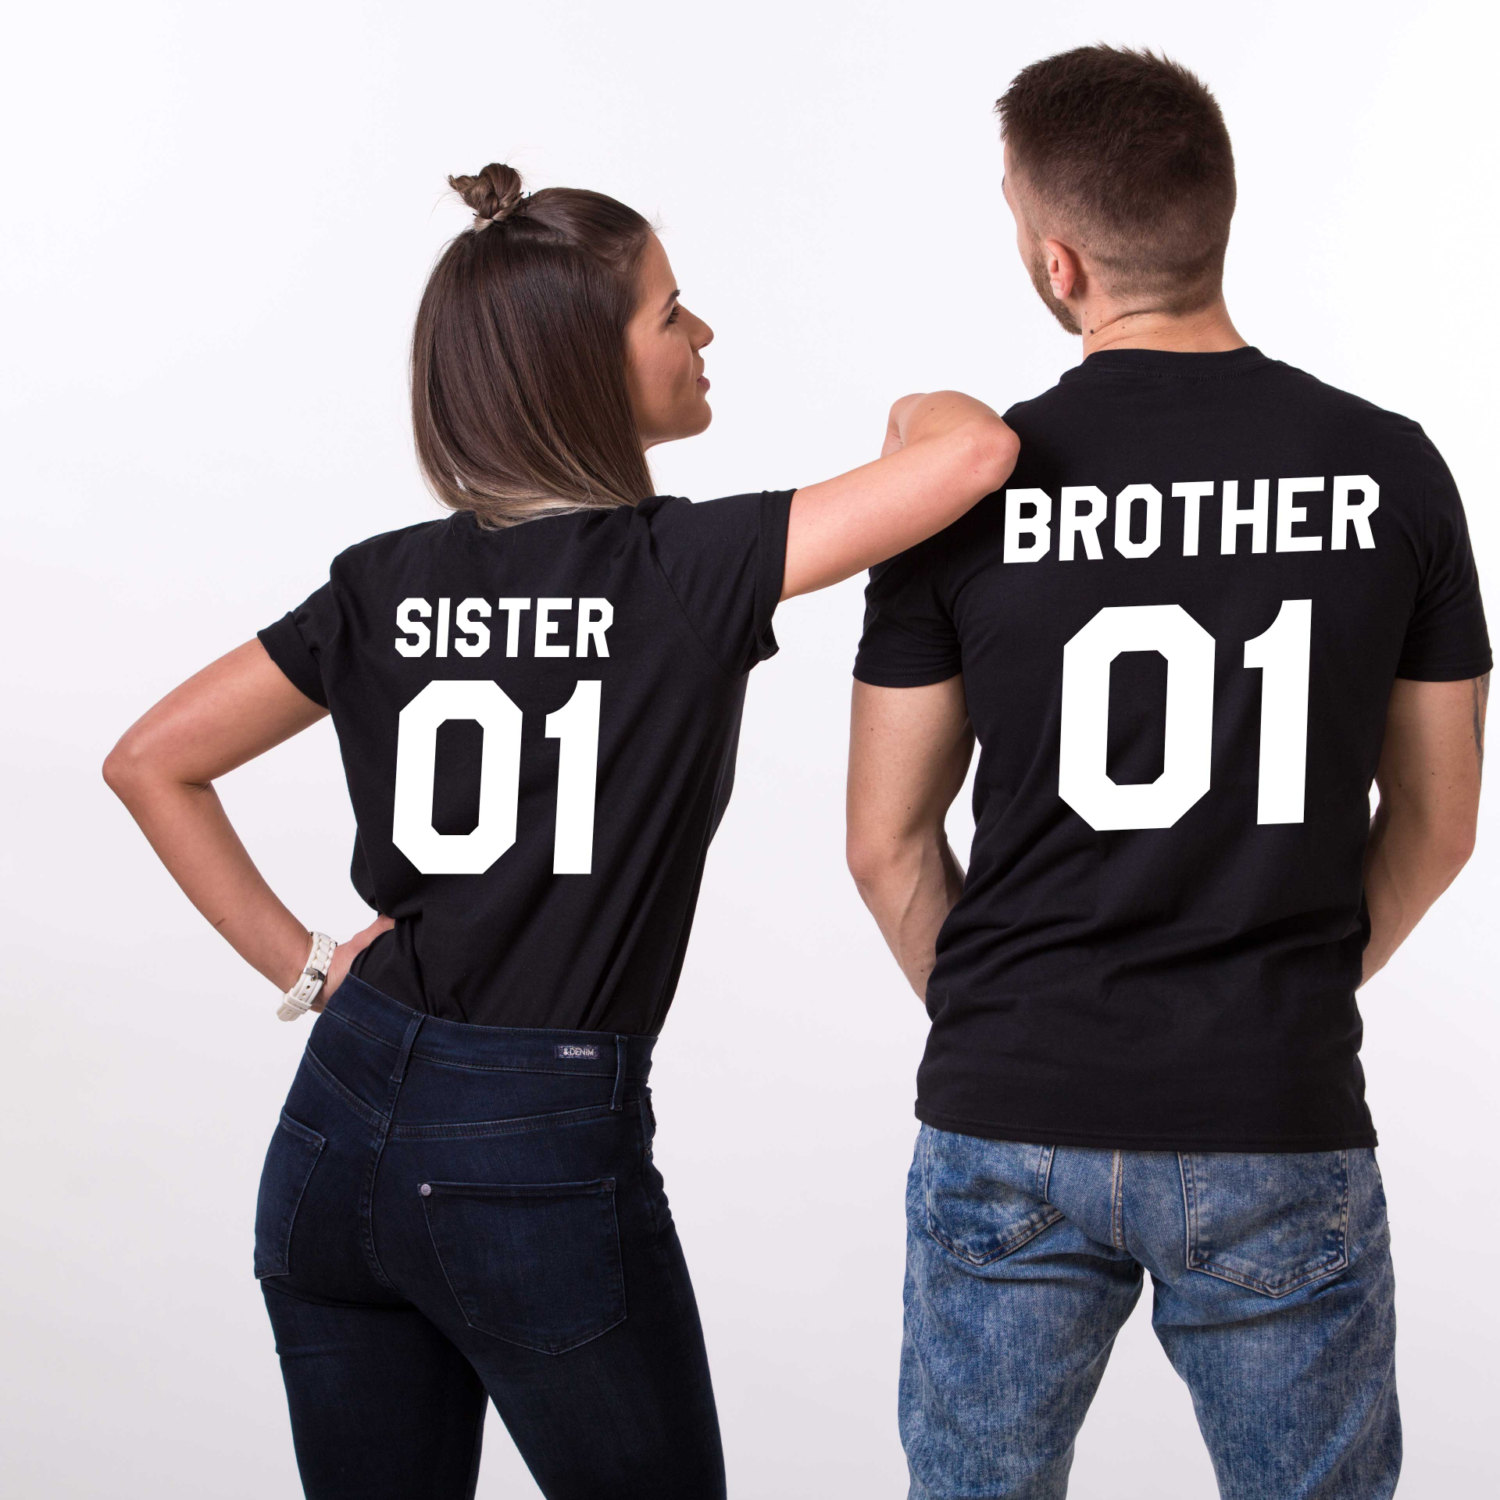 Brother Sister 01, Matching Family Shirts, Unisex Shirts